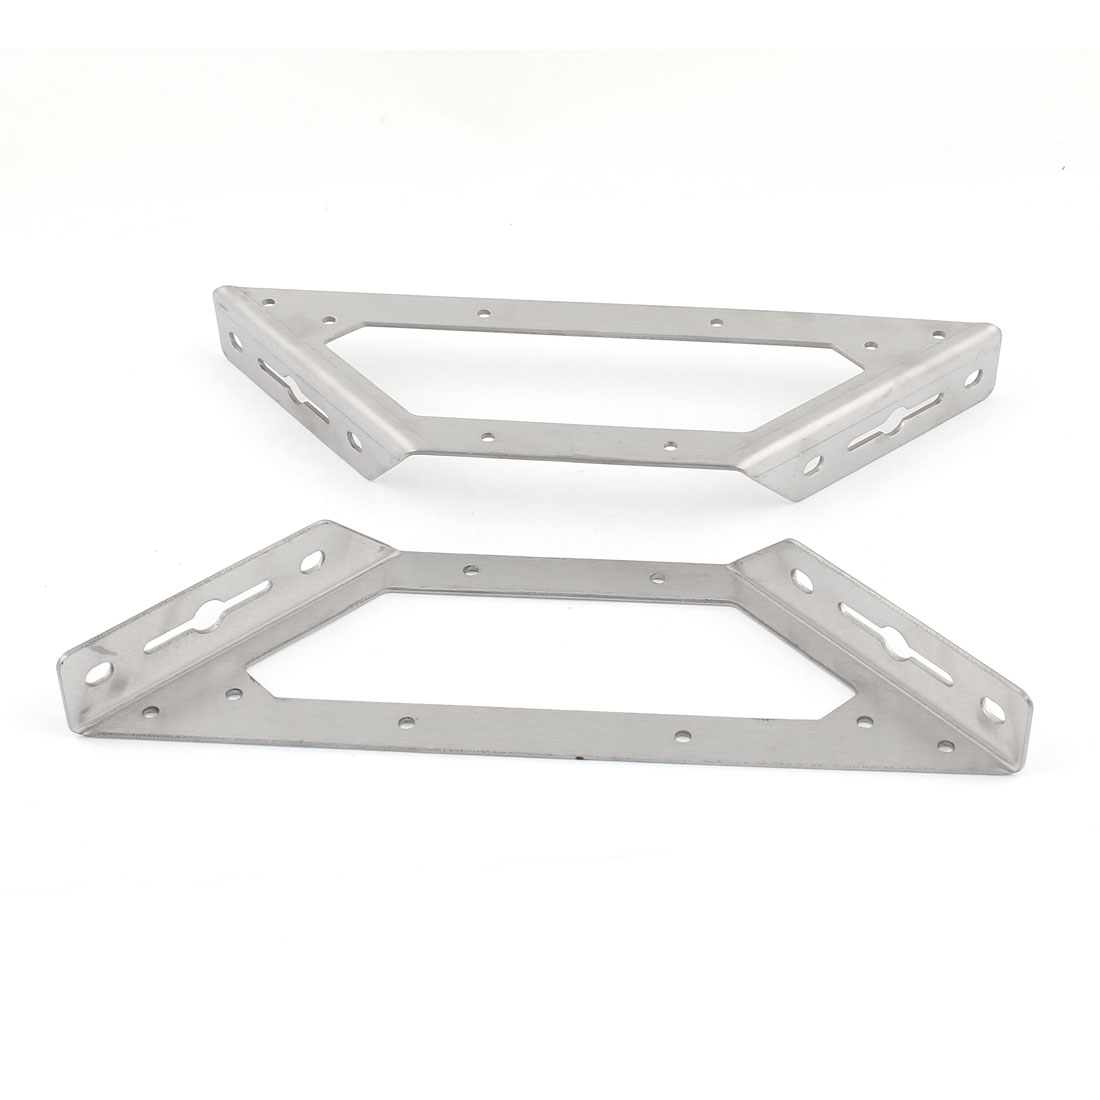 "2 Pcs Silver Tone Stainless Steel Support Shelf Bracket 245mm 9.6"" Length"